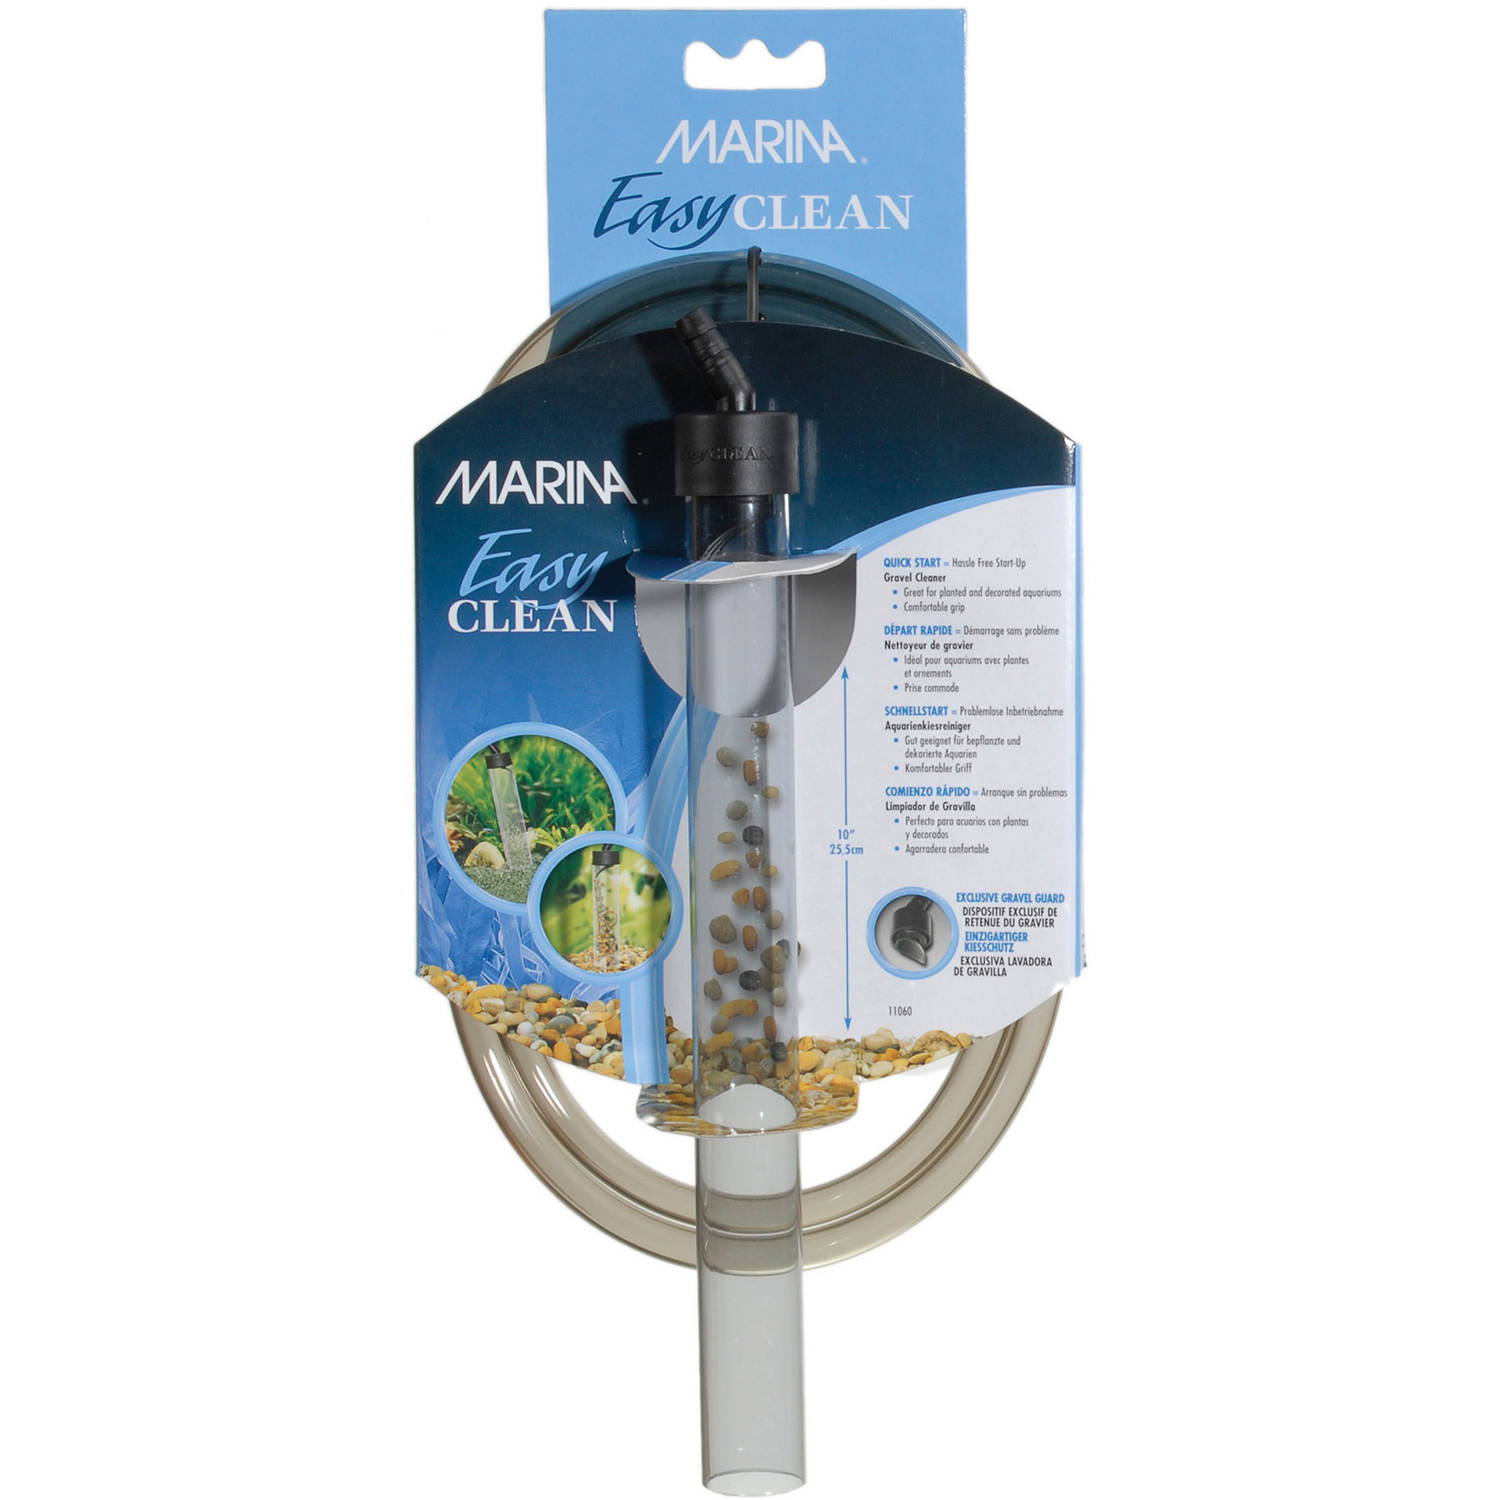 "Marina Gravel Cleaner, Mini, 10"", 1"" dia., w/6' Tube"